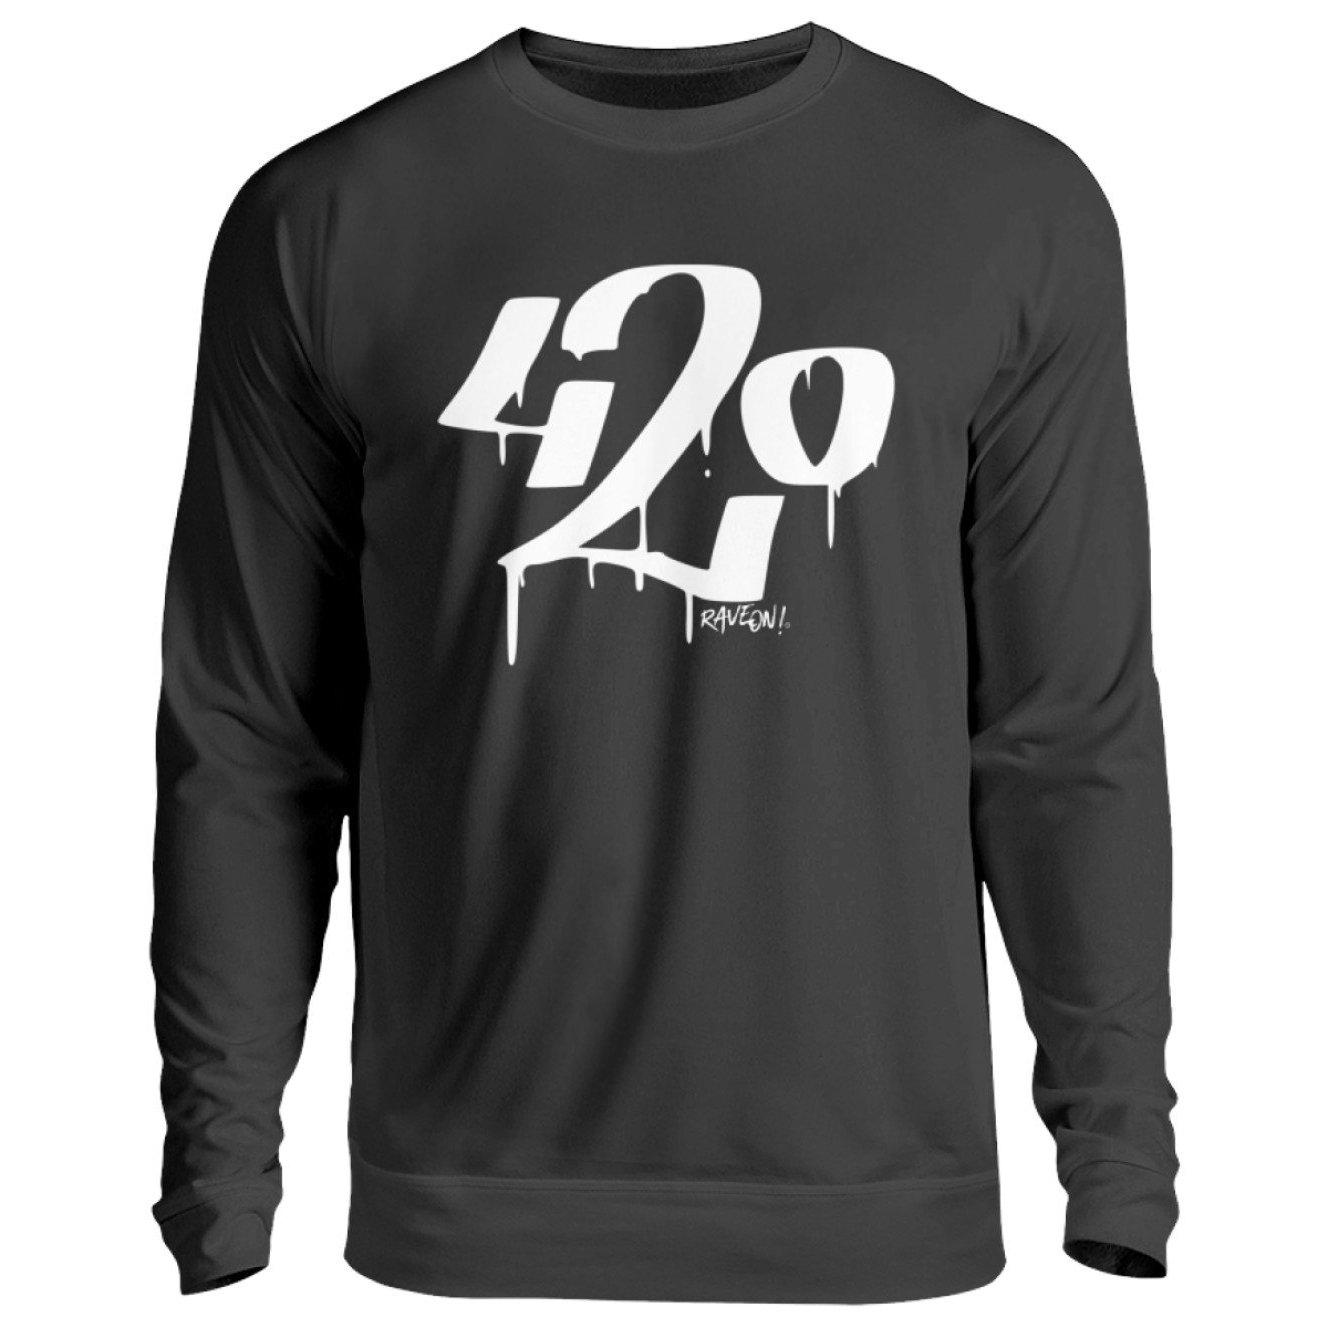 Graffiti 420 - Rave On!® - Unisex Pullover Unisex Sweatshirt Jet Black / S - Rave On!® der Club & Techno Szene Shop für Coole Junge Mode Streetwear Style & Fashion Outfits + Sexy Festival 420 Stuff